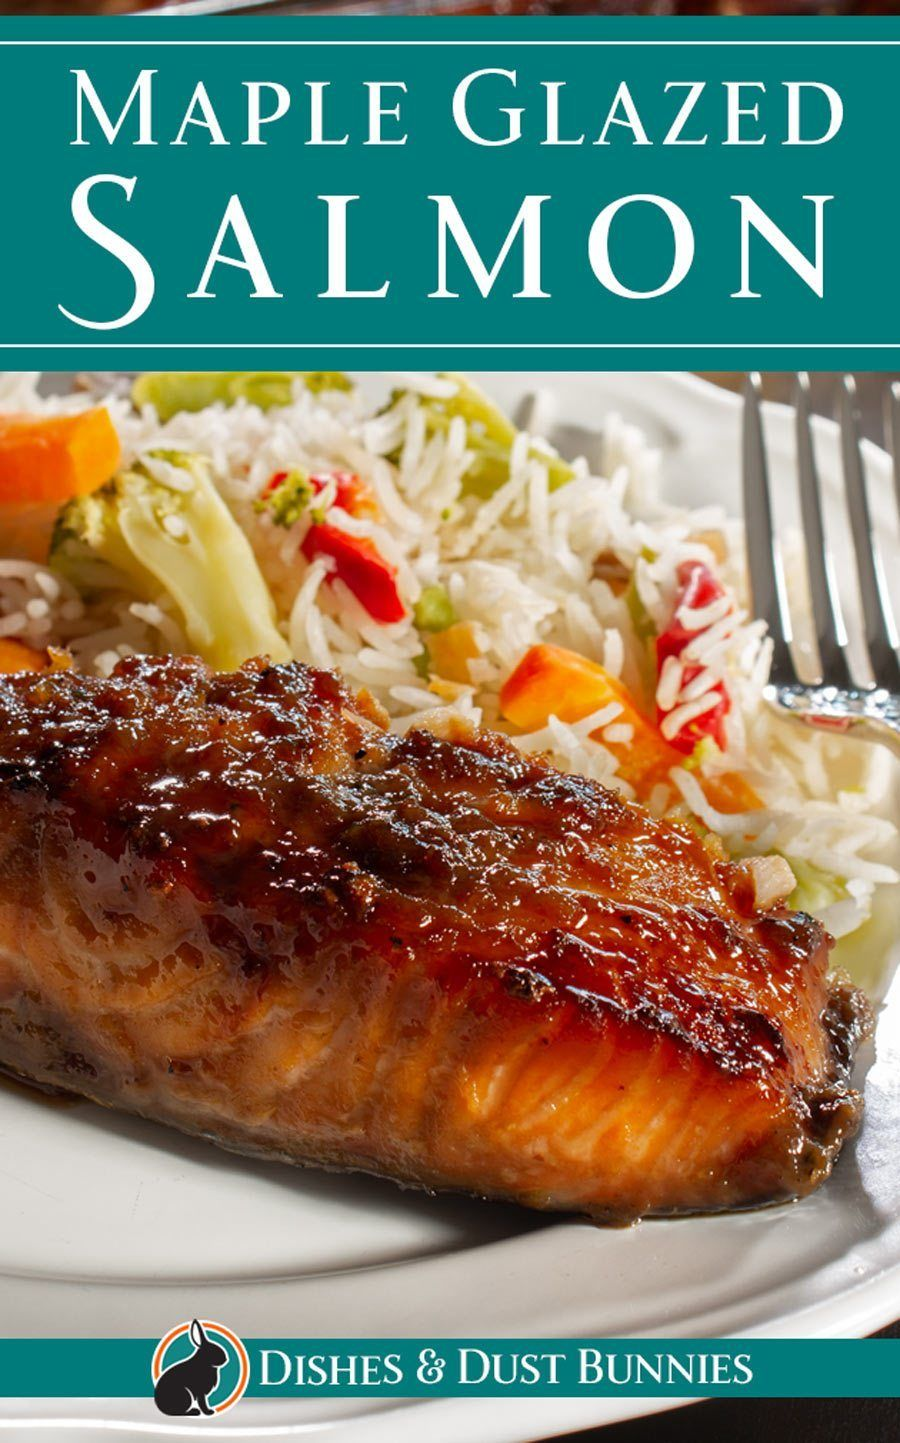 Maple Glazed Salmon - Dishes & Dust Bunnies